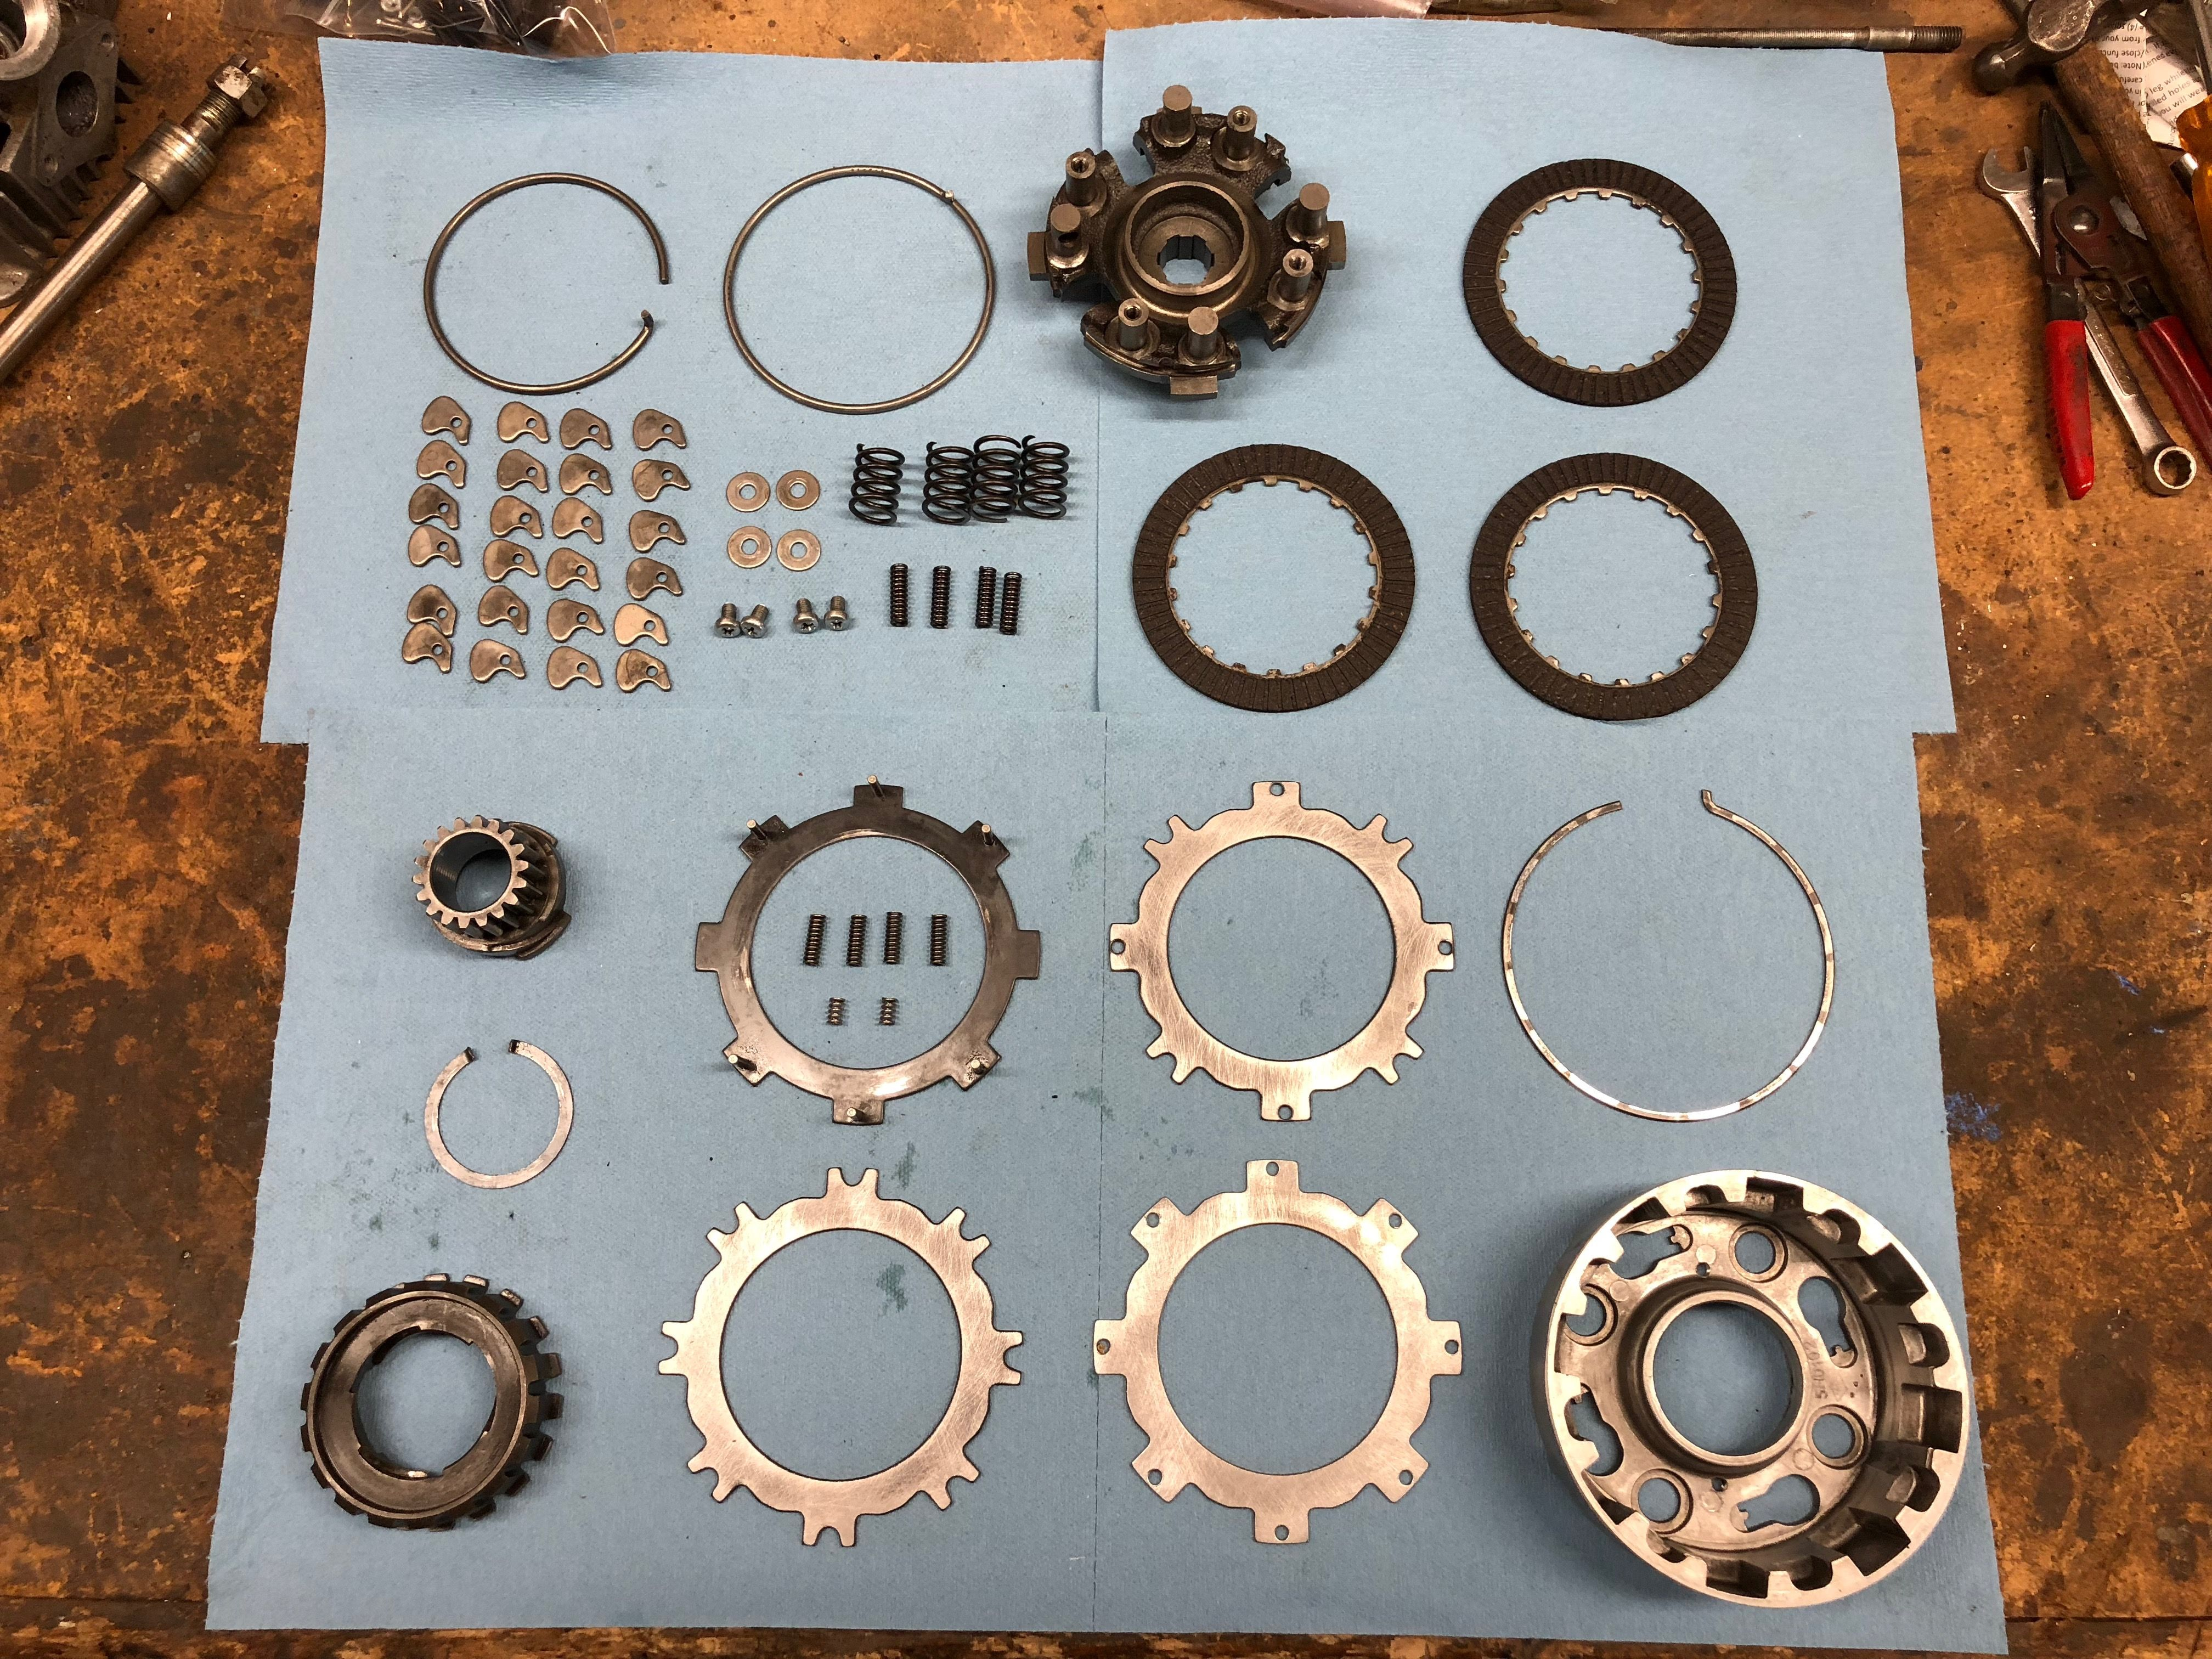 At the attached link I made a post about how to rebuild a Honda CT90